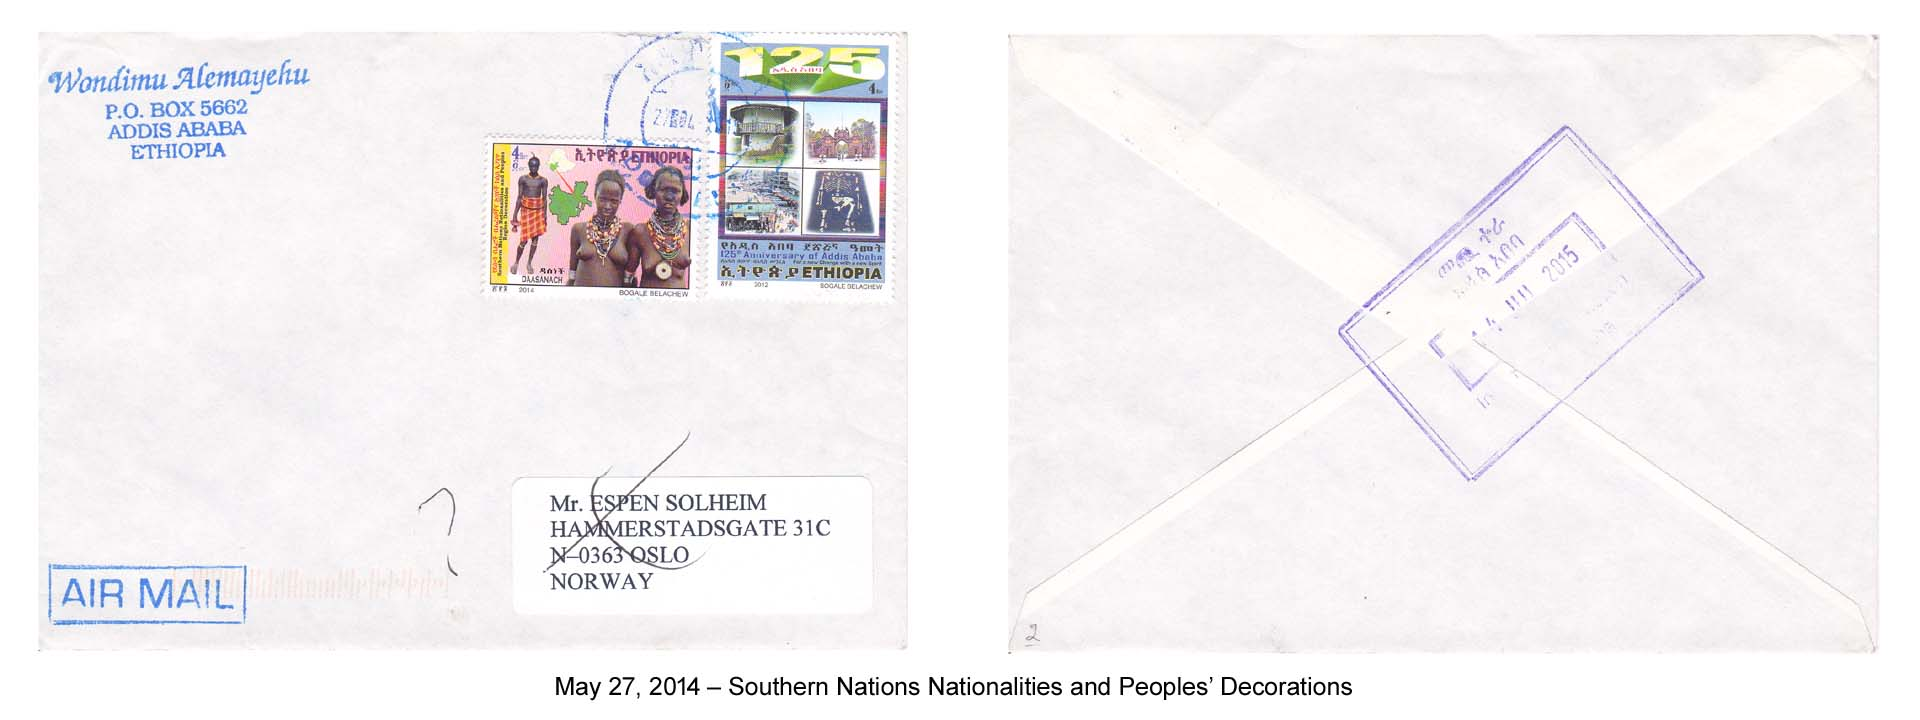 20140527 – Southern Nations Nationalities and Peoples' Decorations